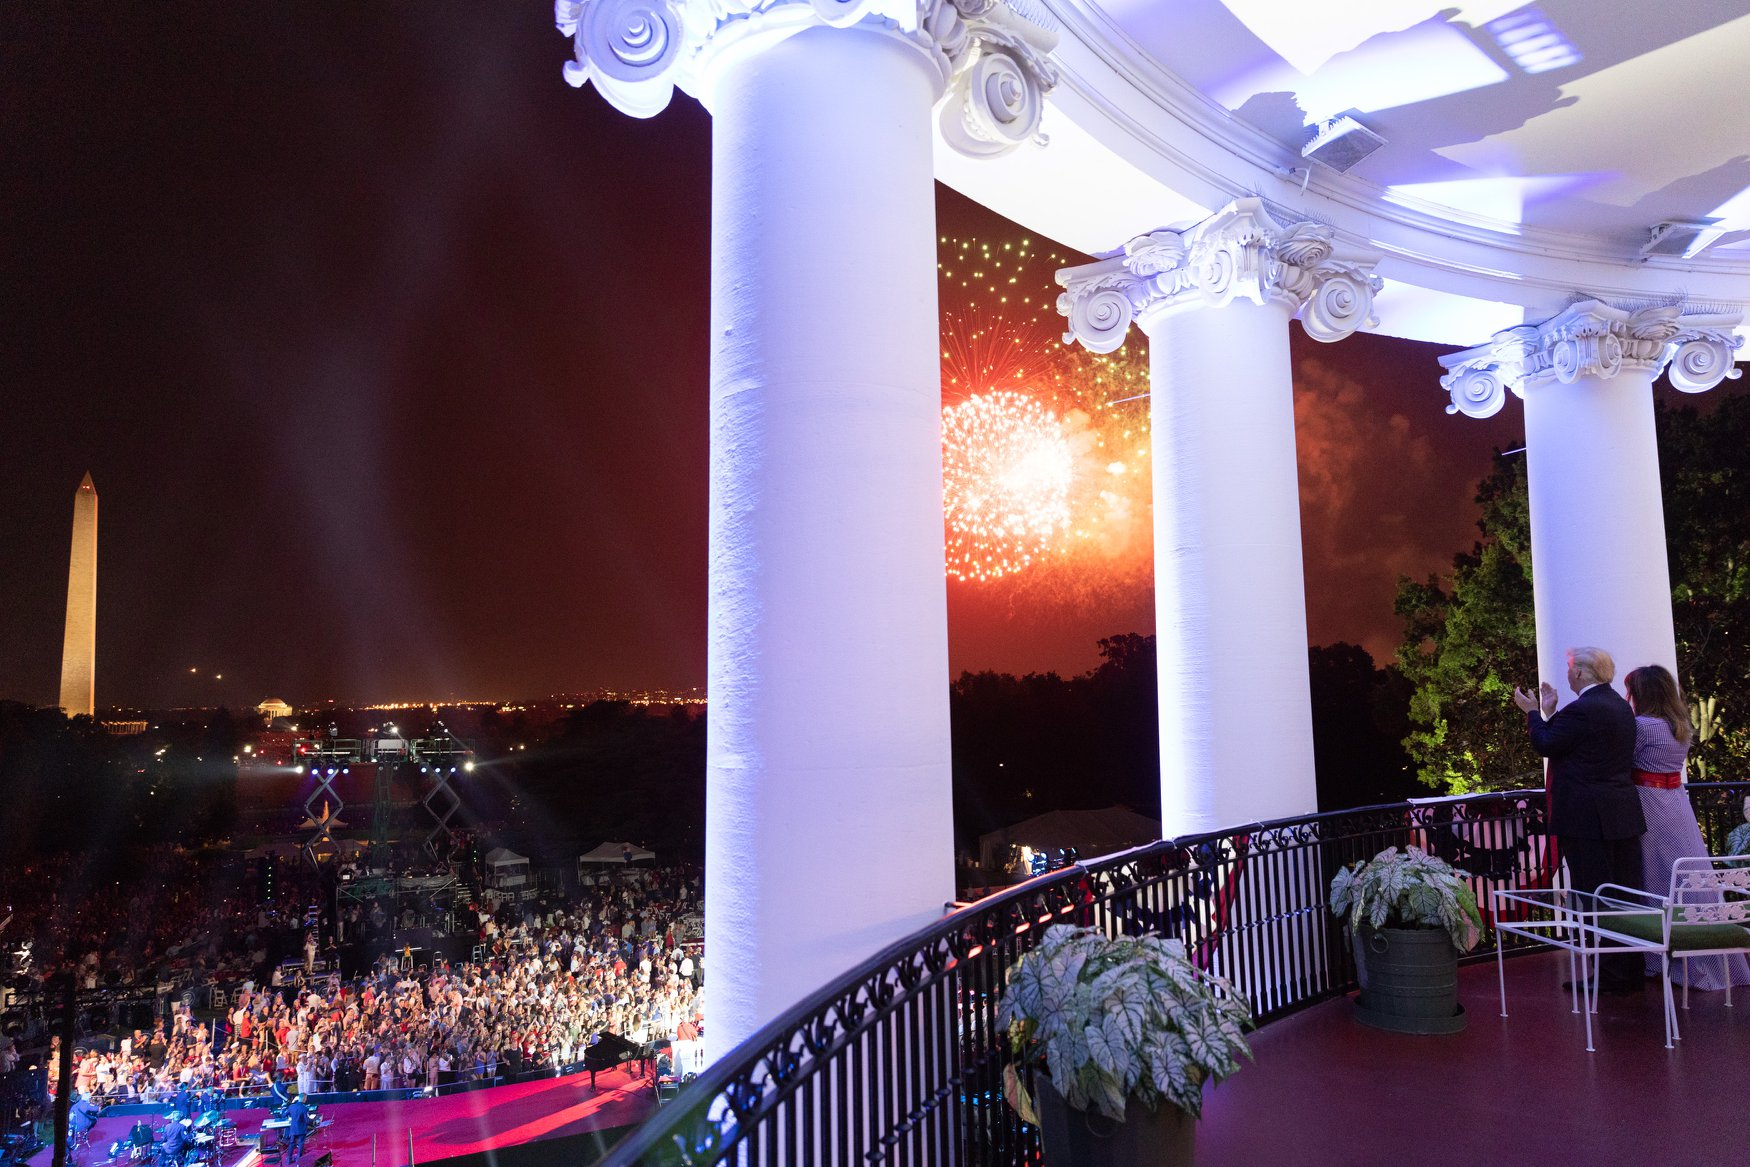 President Donald J. Trump and First Lady Melania Trump watch Fourth of July fireworks at the White House | July 4, 2018 (Official White House Photo/Shealah Craighead)